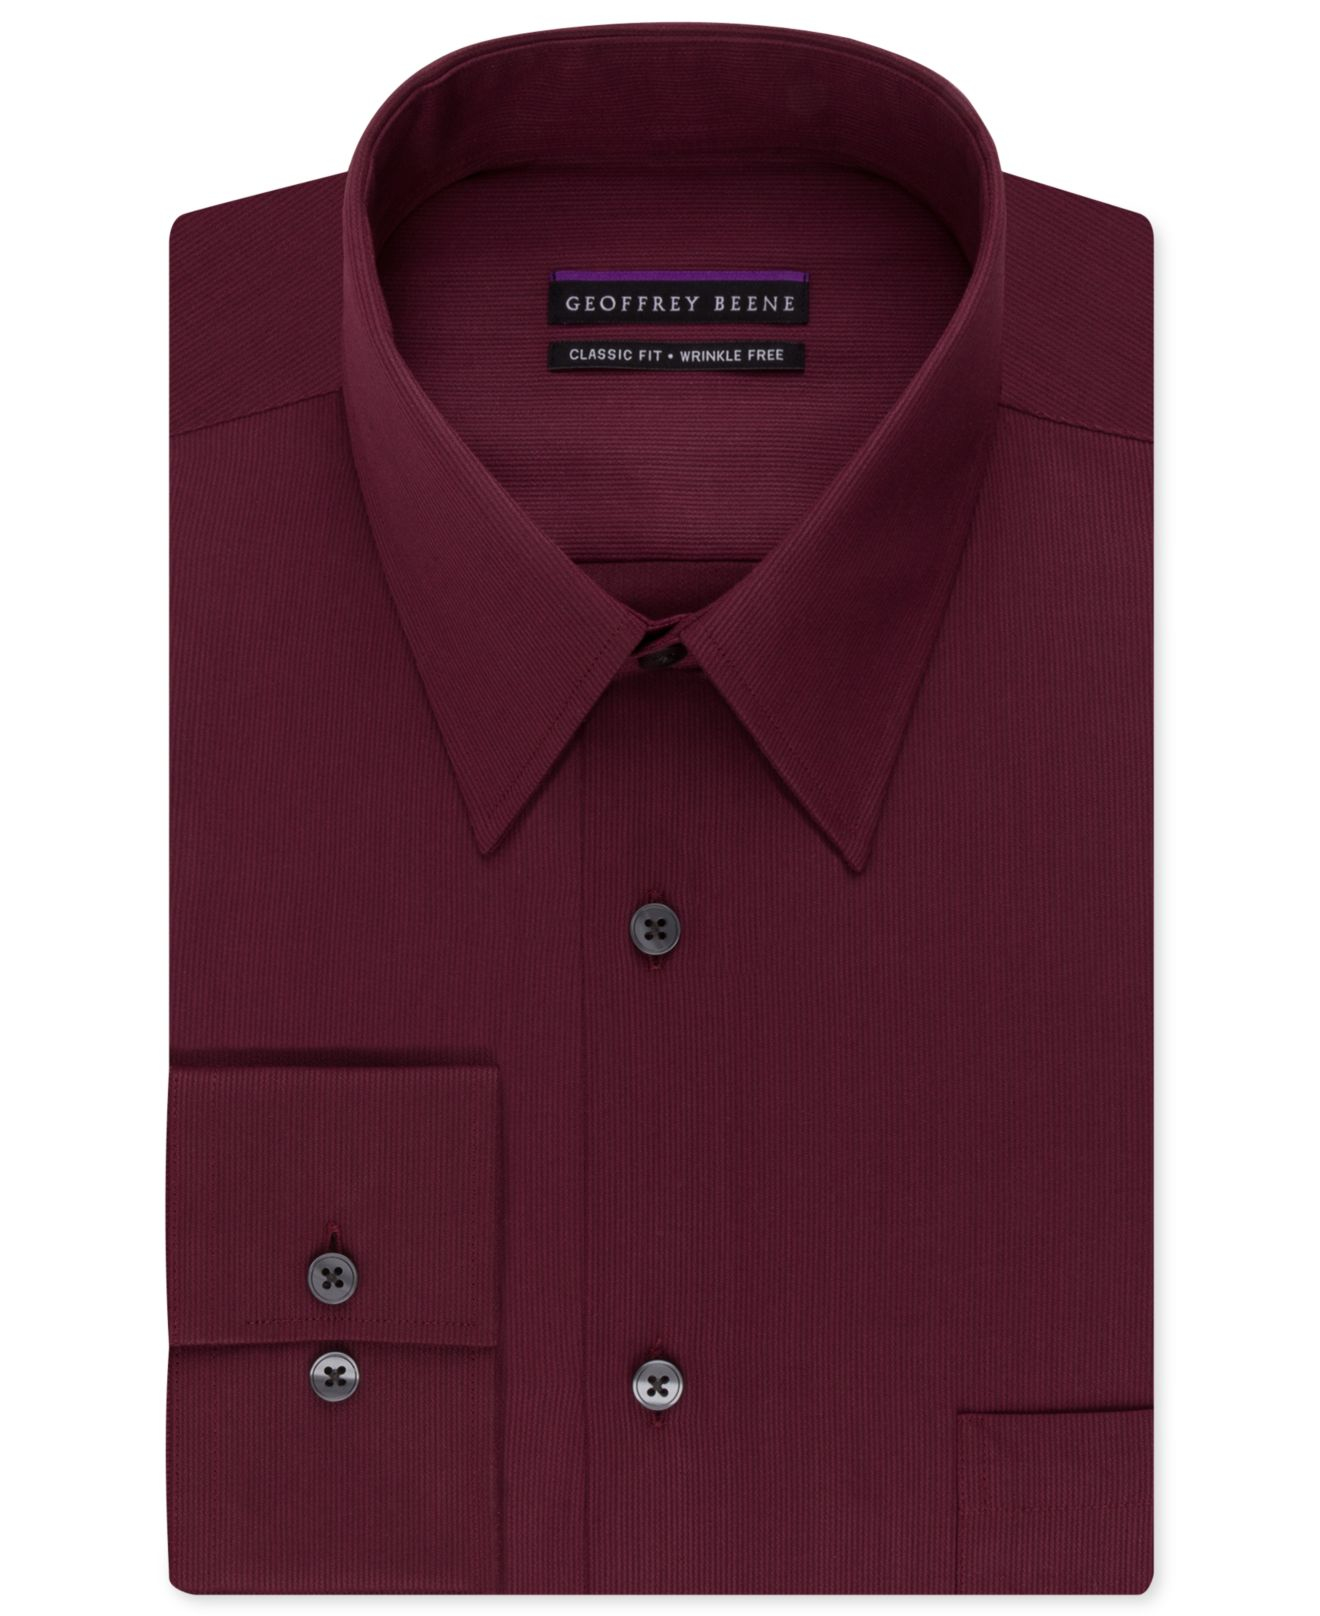 Geoffrey beene Non-iron Bedford Cord Solid Dress Shirt in ...